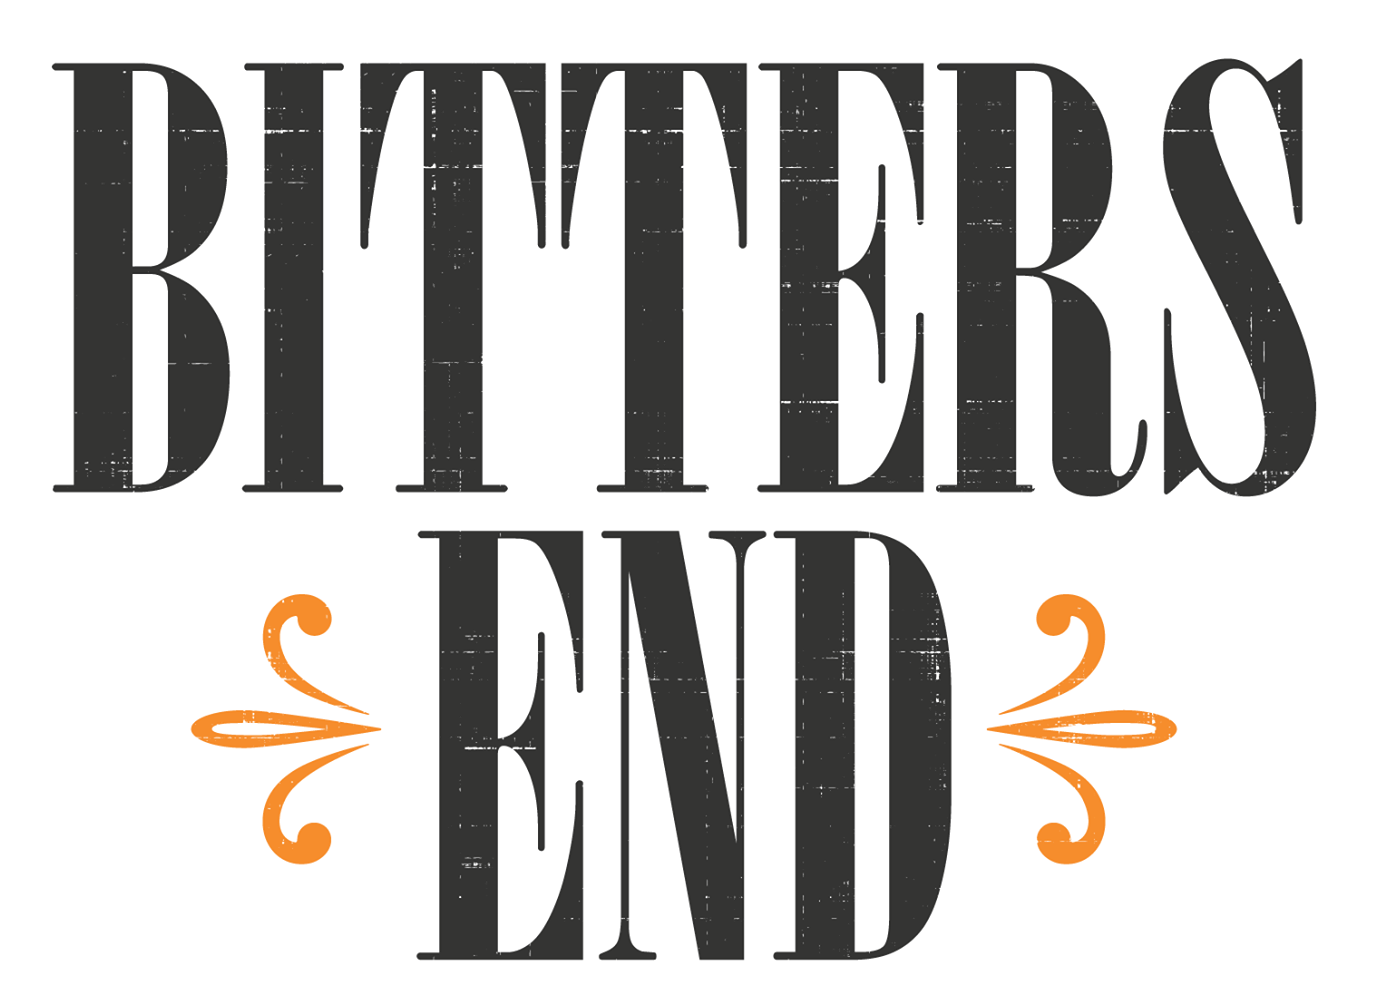 Logo for Bitters End